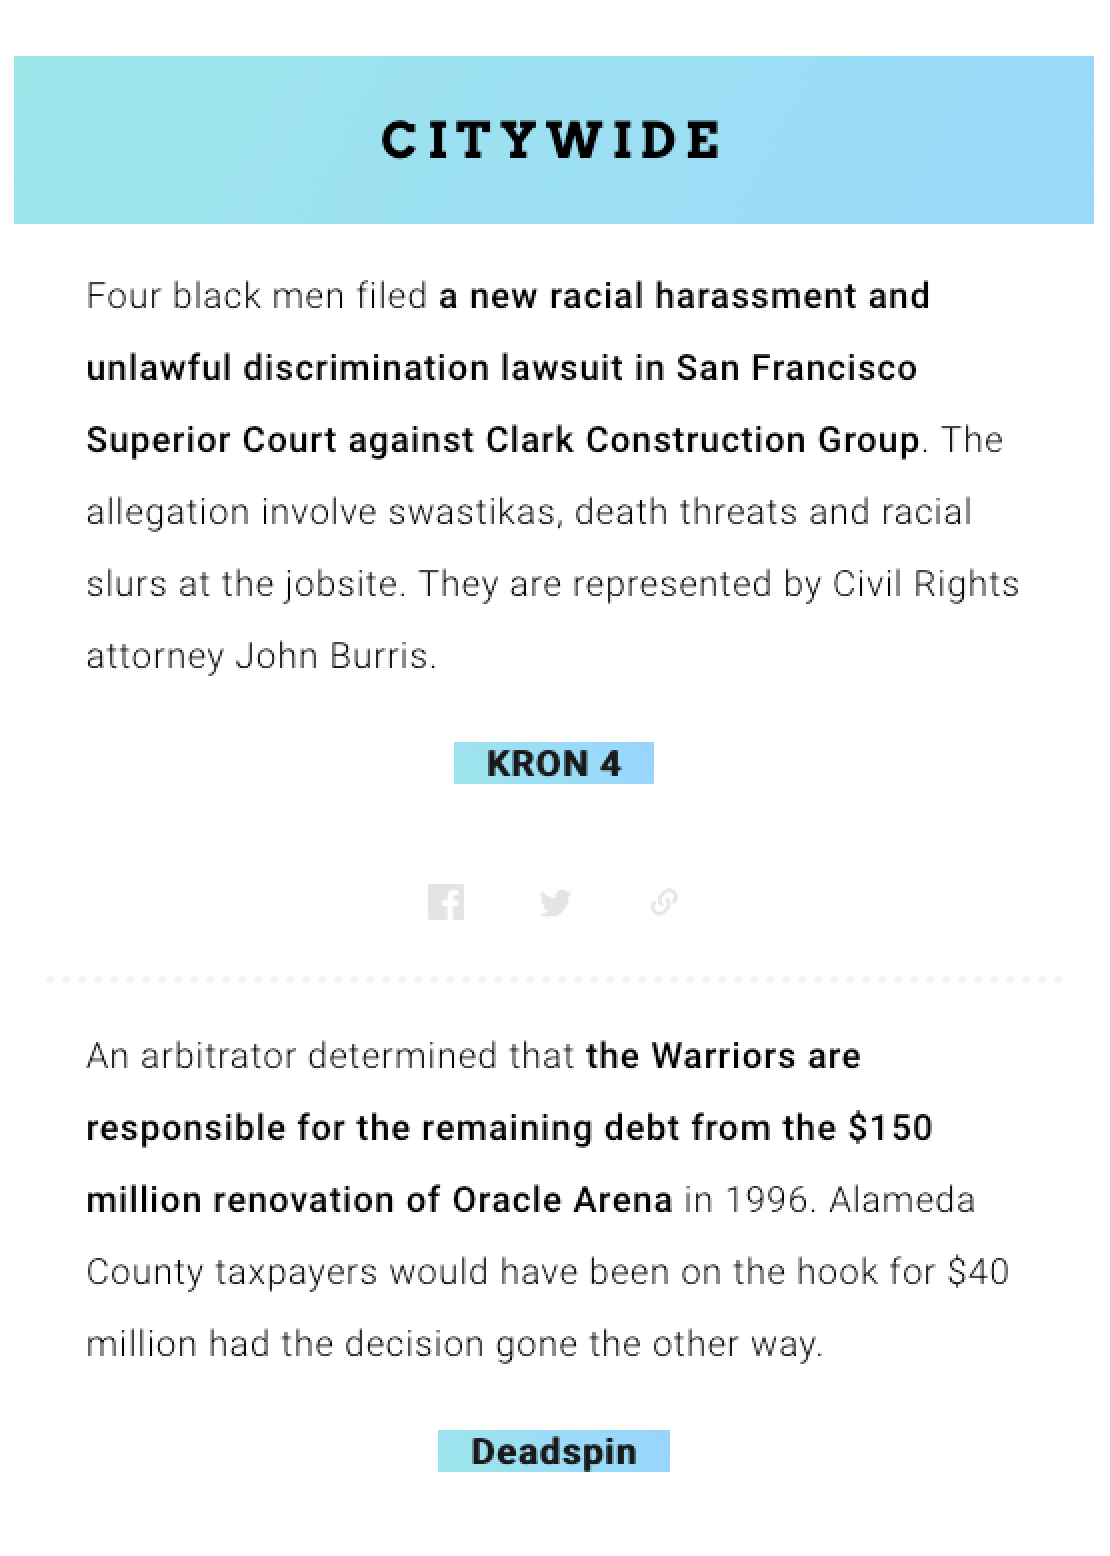 A screenshot of the citywide section of a newsletter